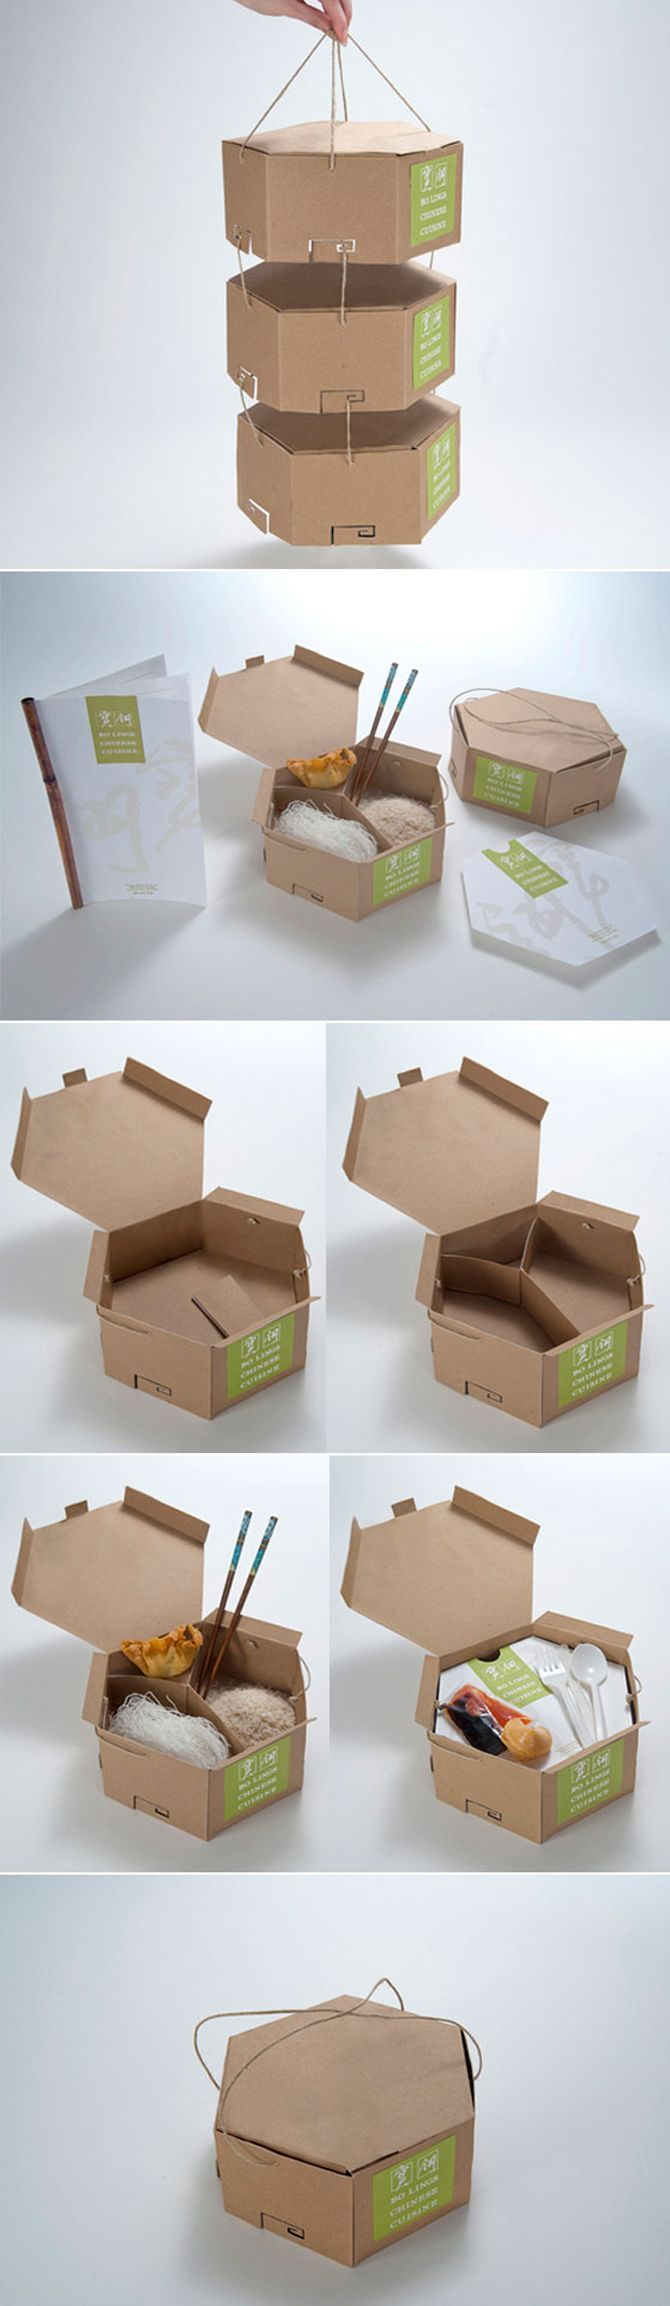 another great take-away #packaging #design and this one is #eco-friendly